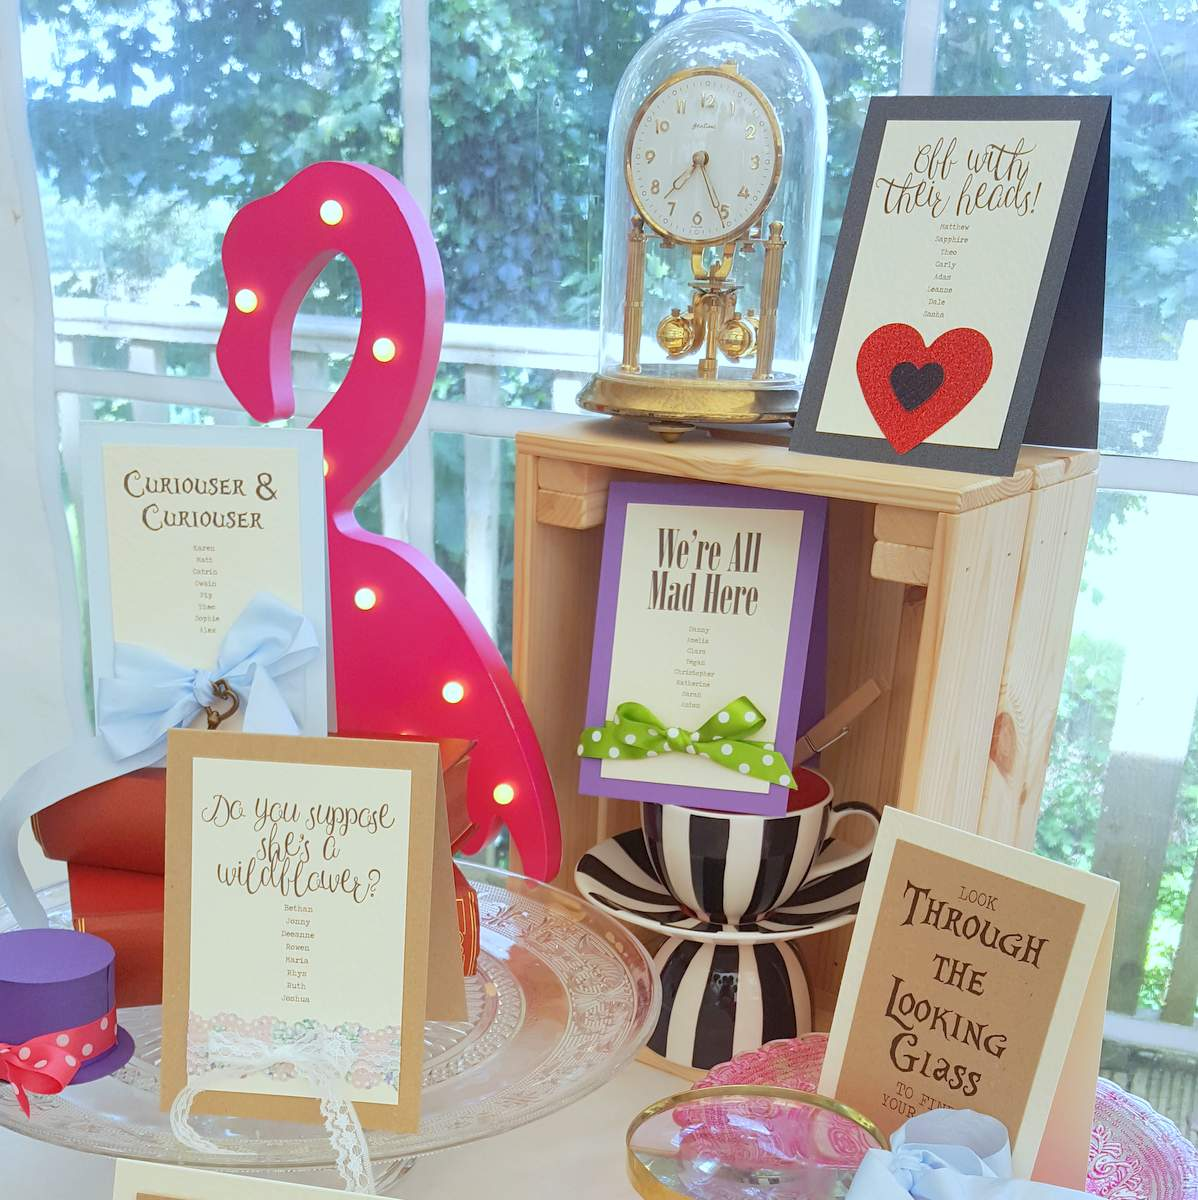 a display of printed cards and props that make a table plan for an alice in wonderland inspired wedding